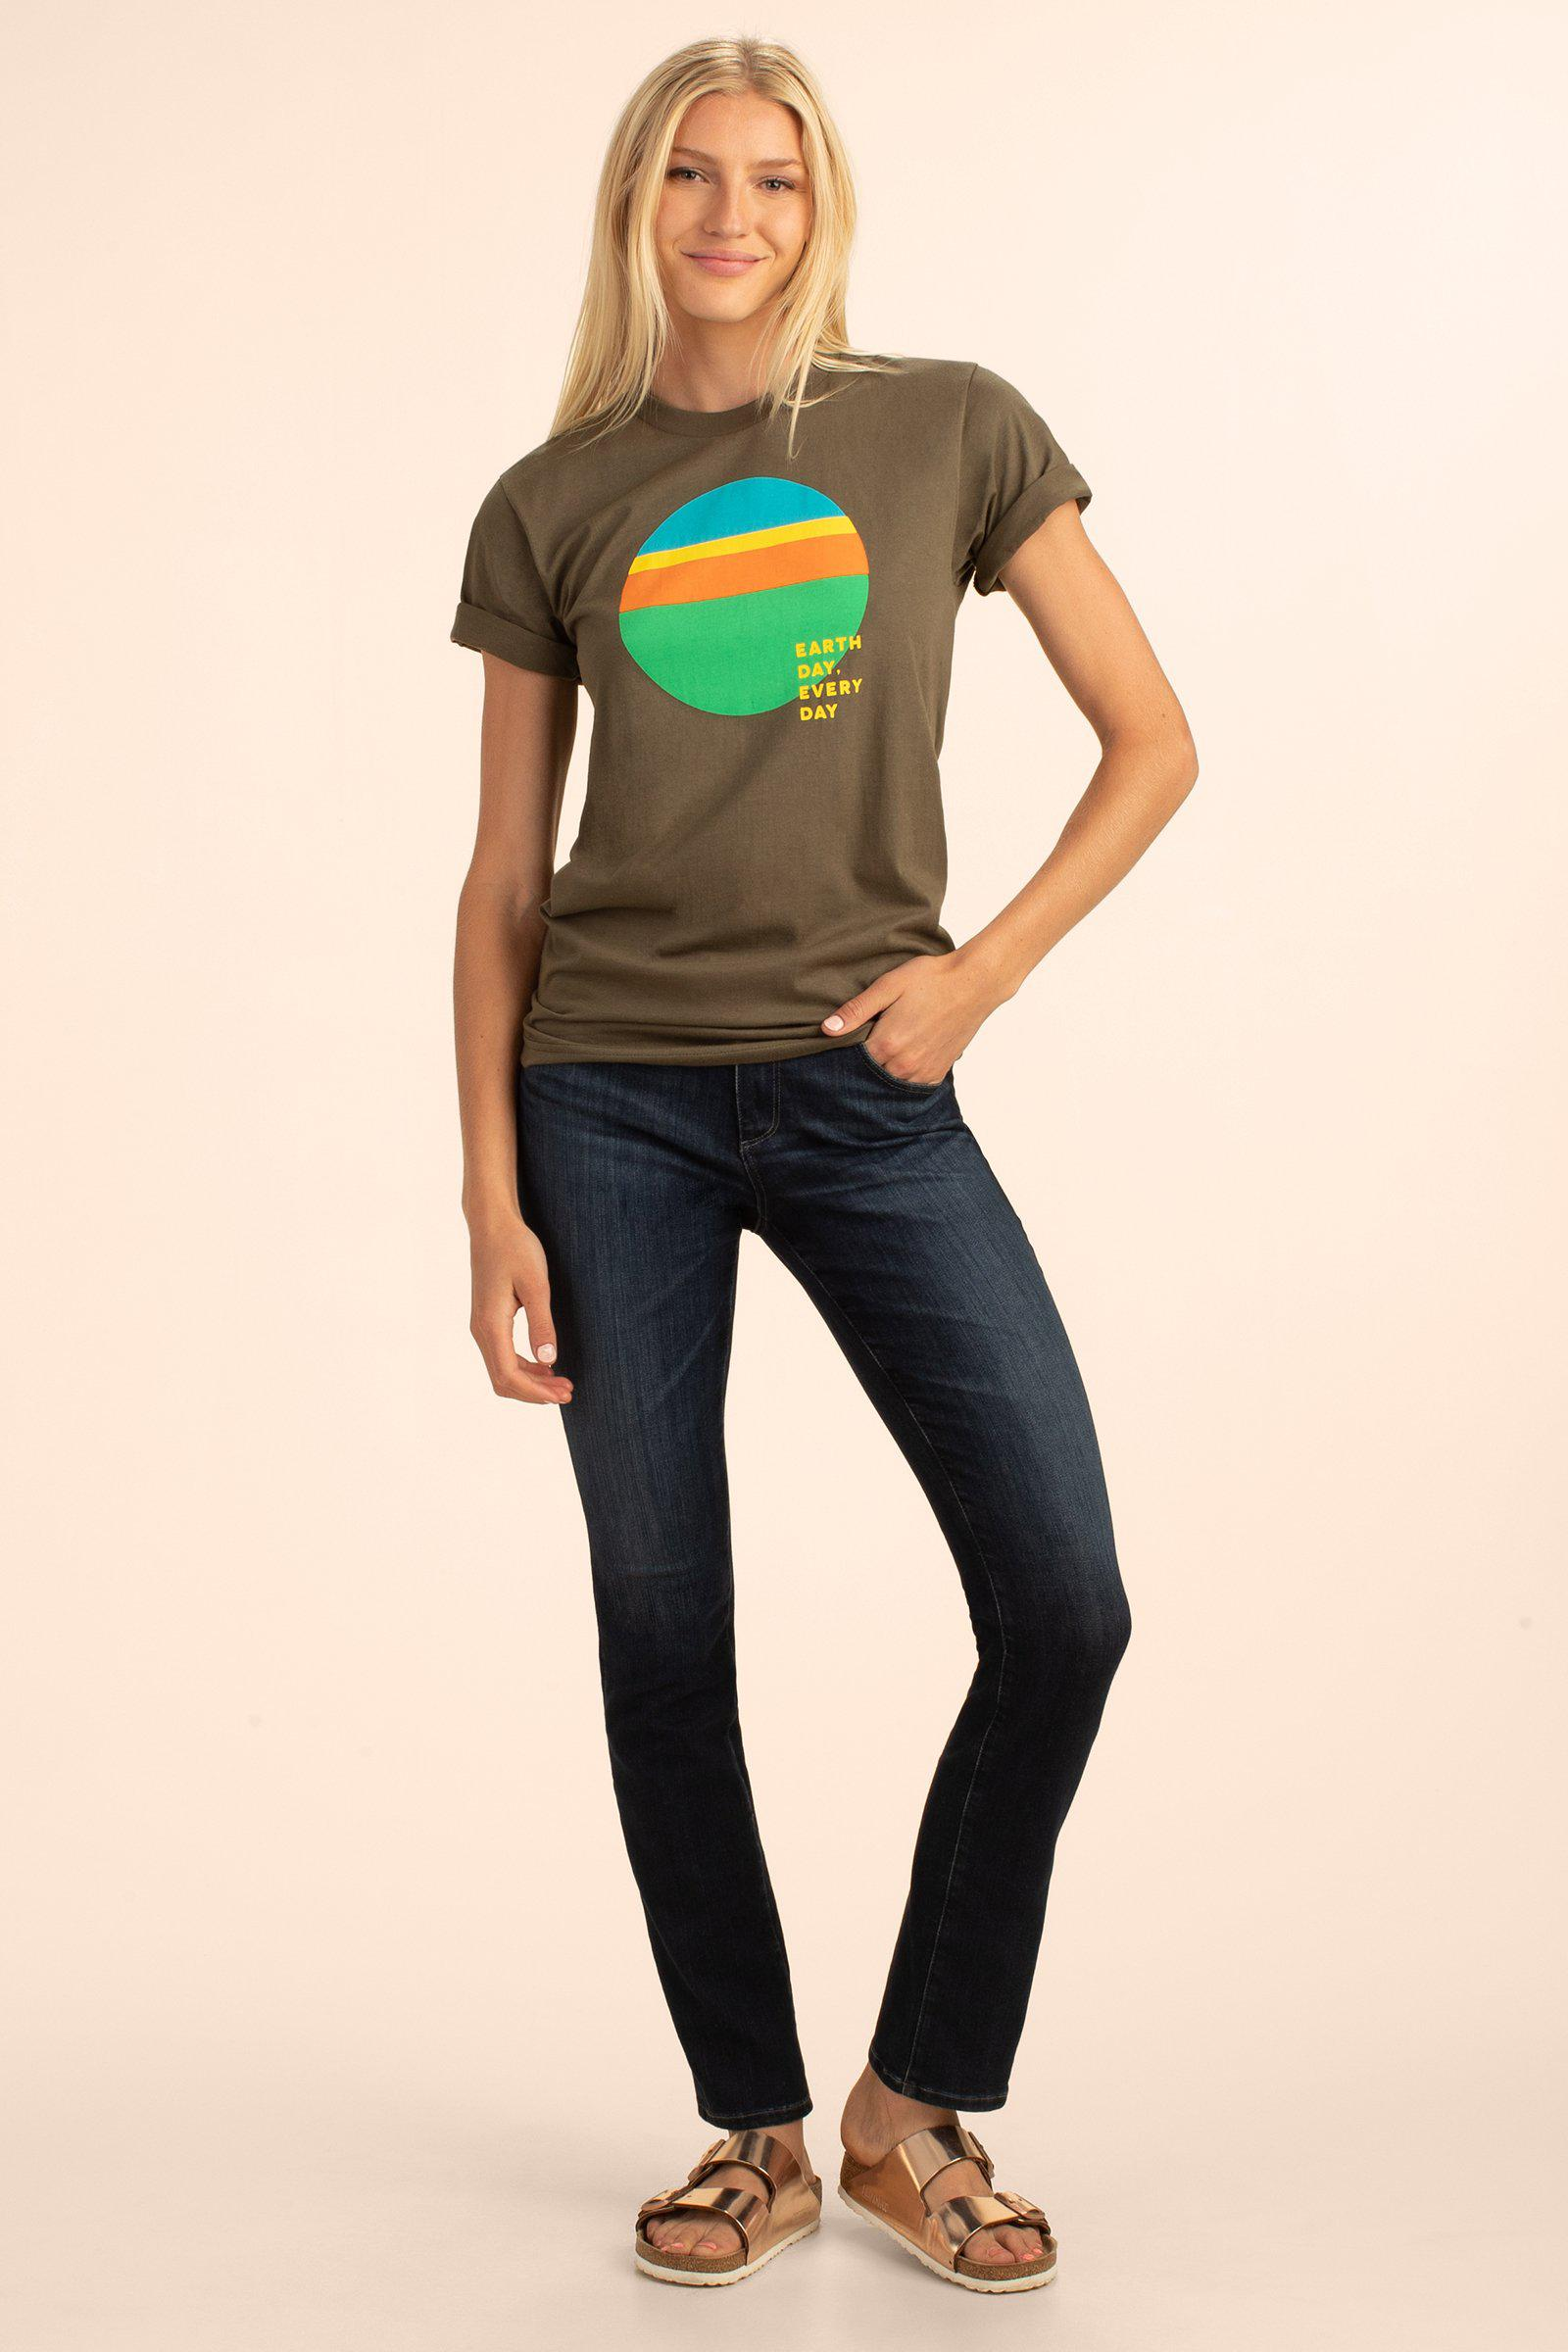 Limited-Edition Environmental Tee 2